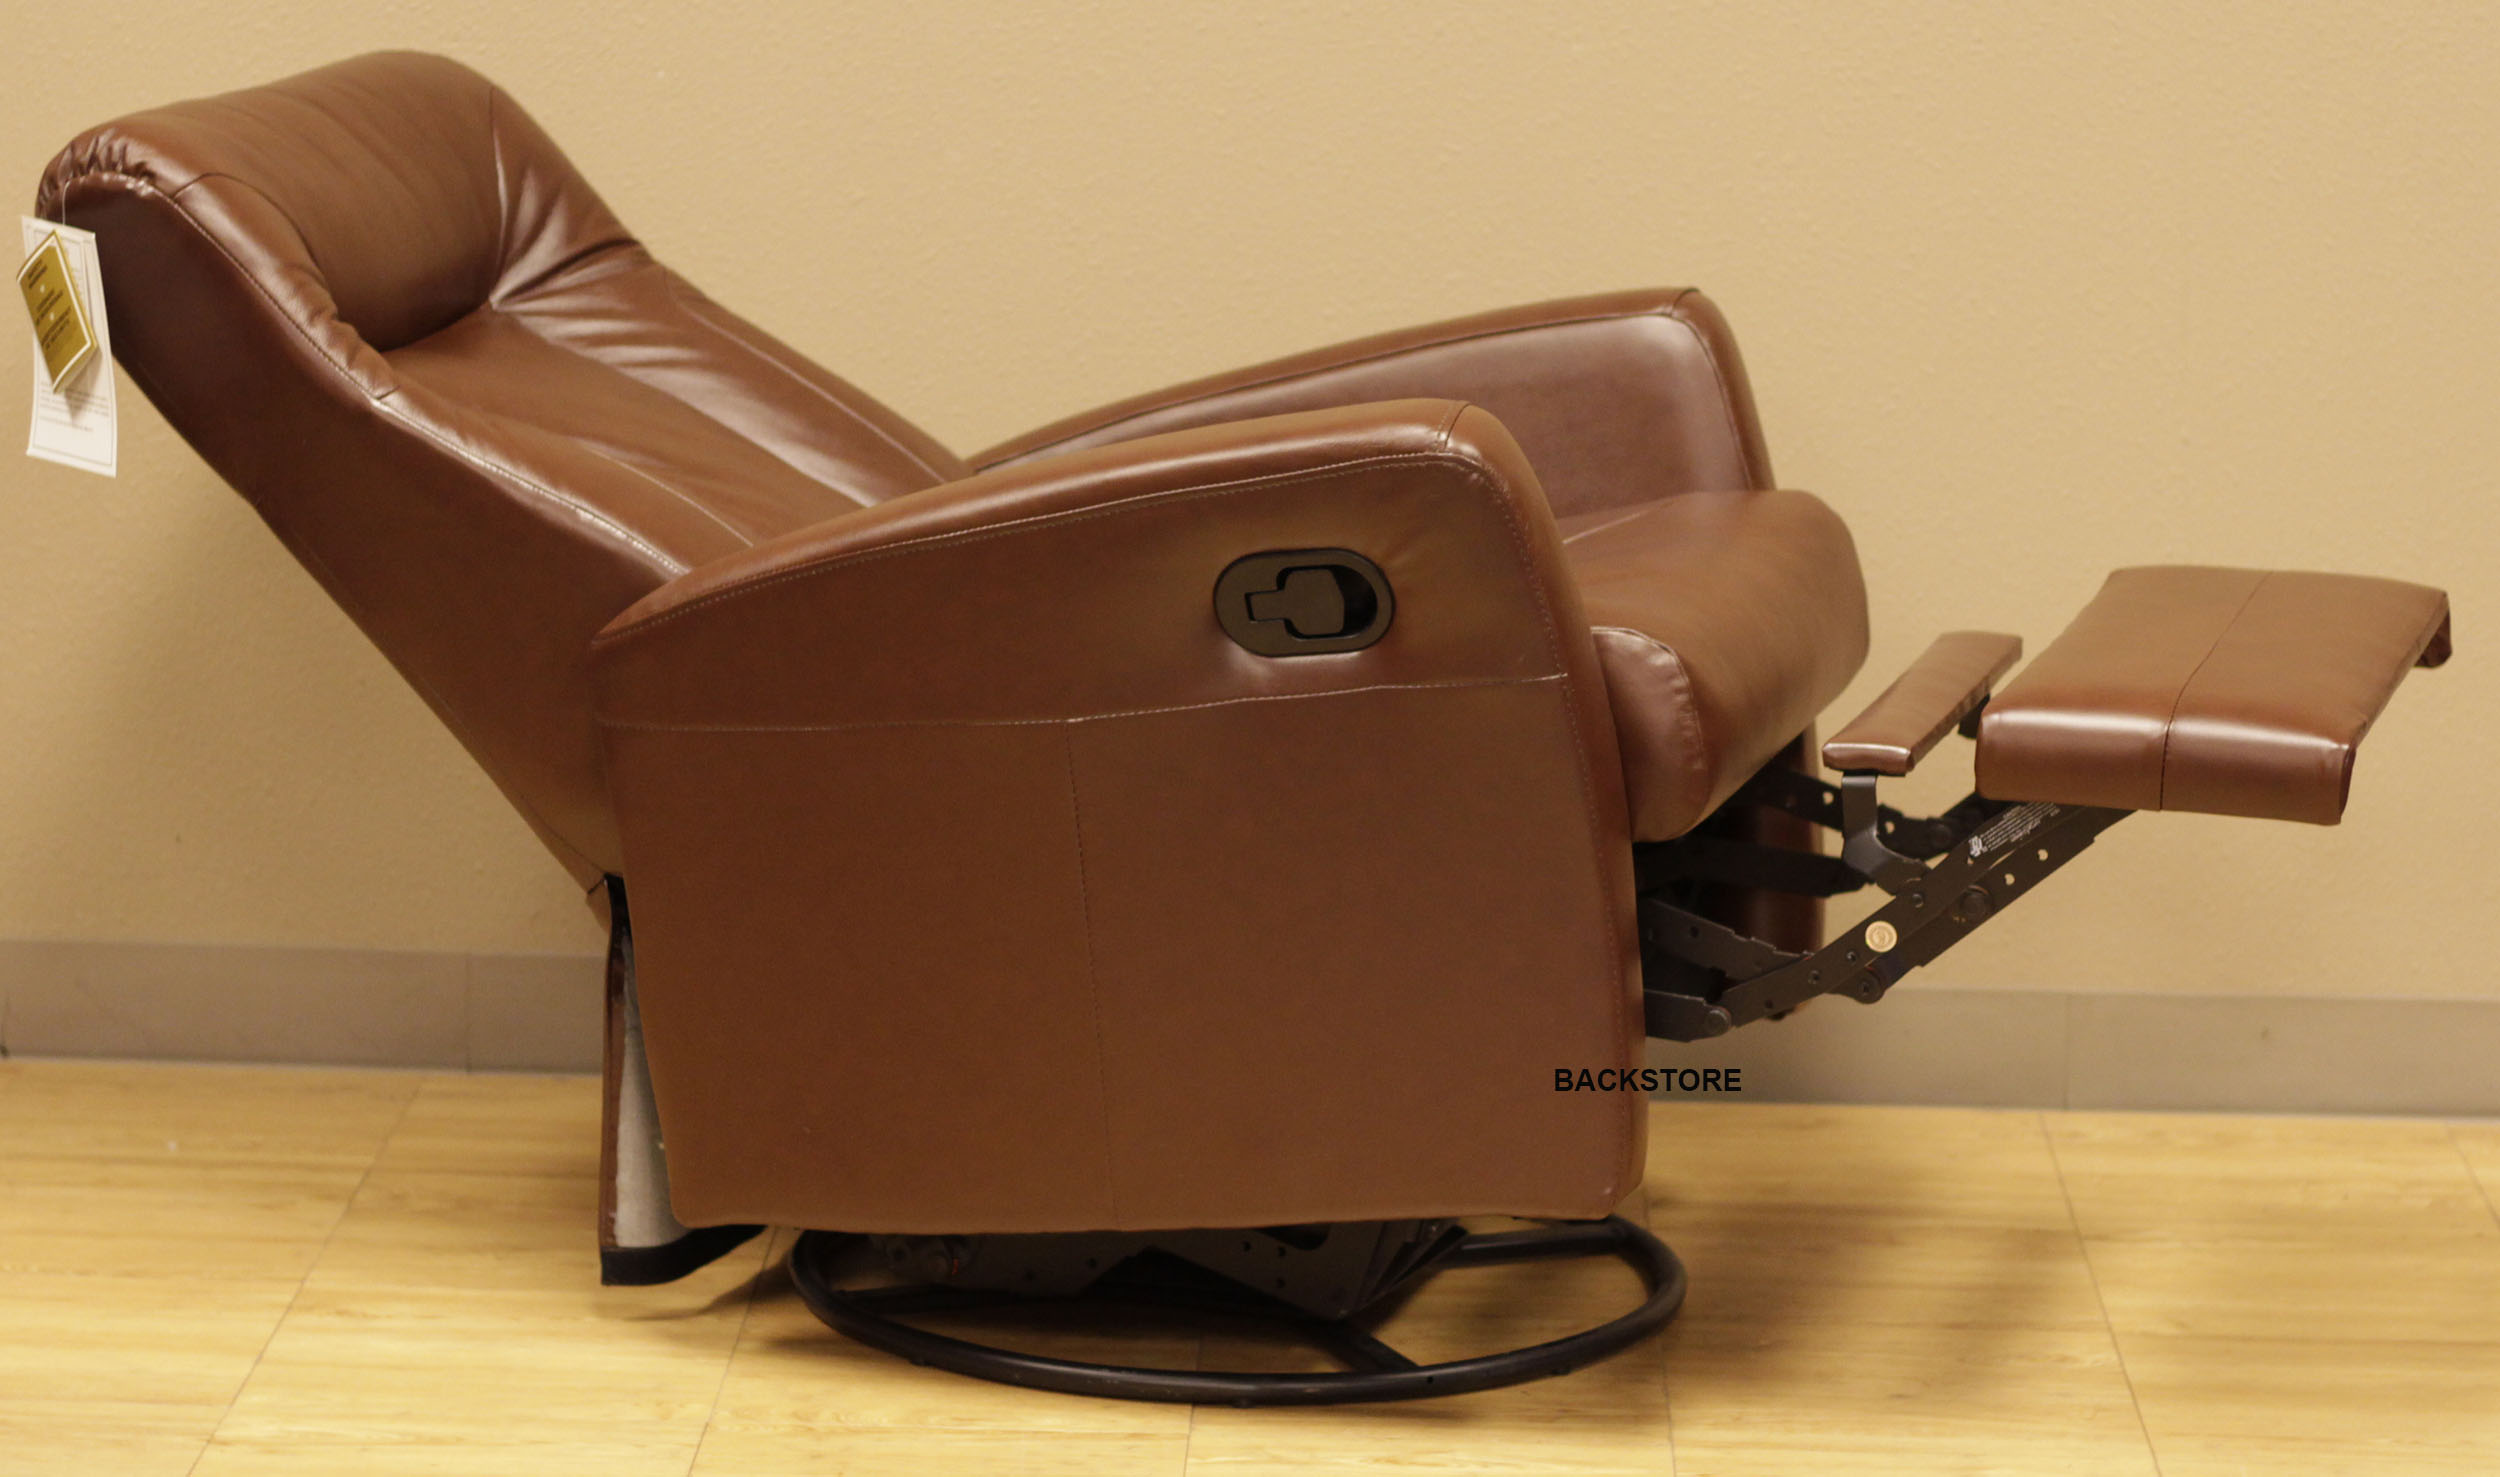 Bon Barcalounger Grissom II Swing Rocker Glider Recliner In Brown Leather